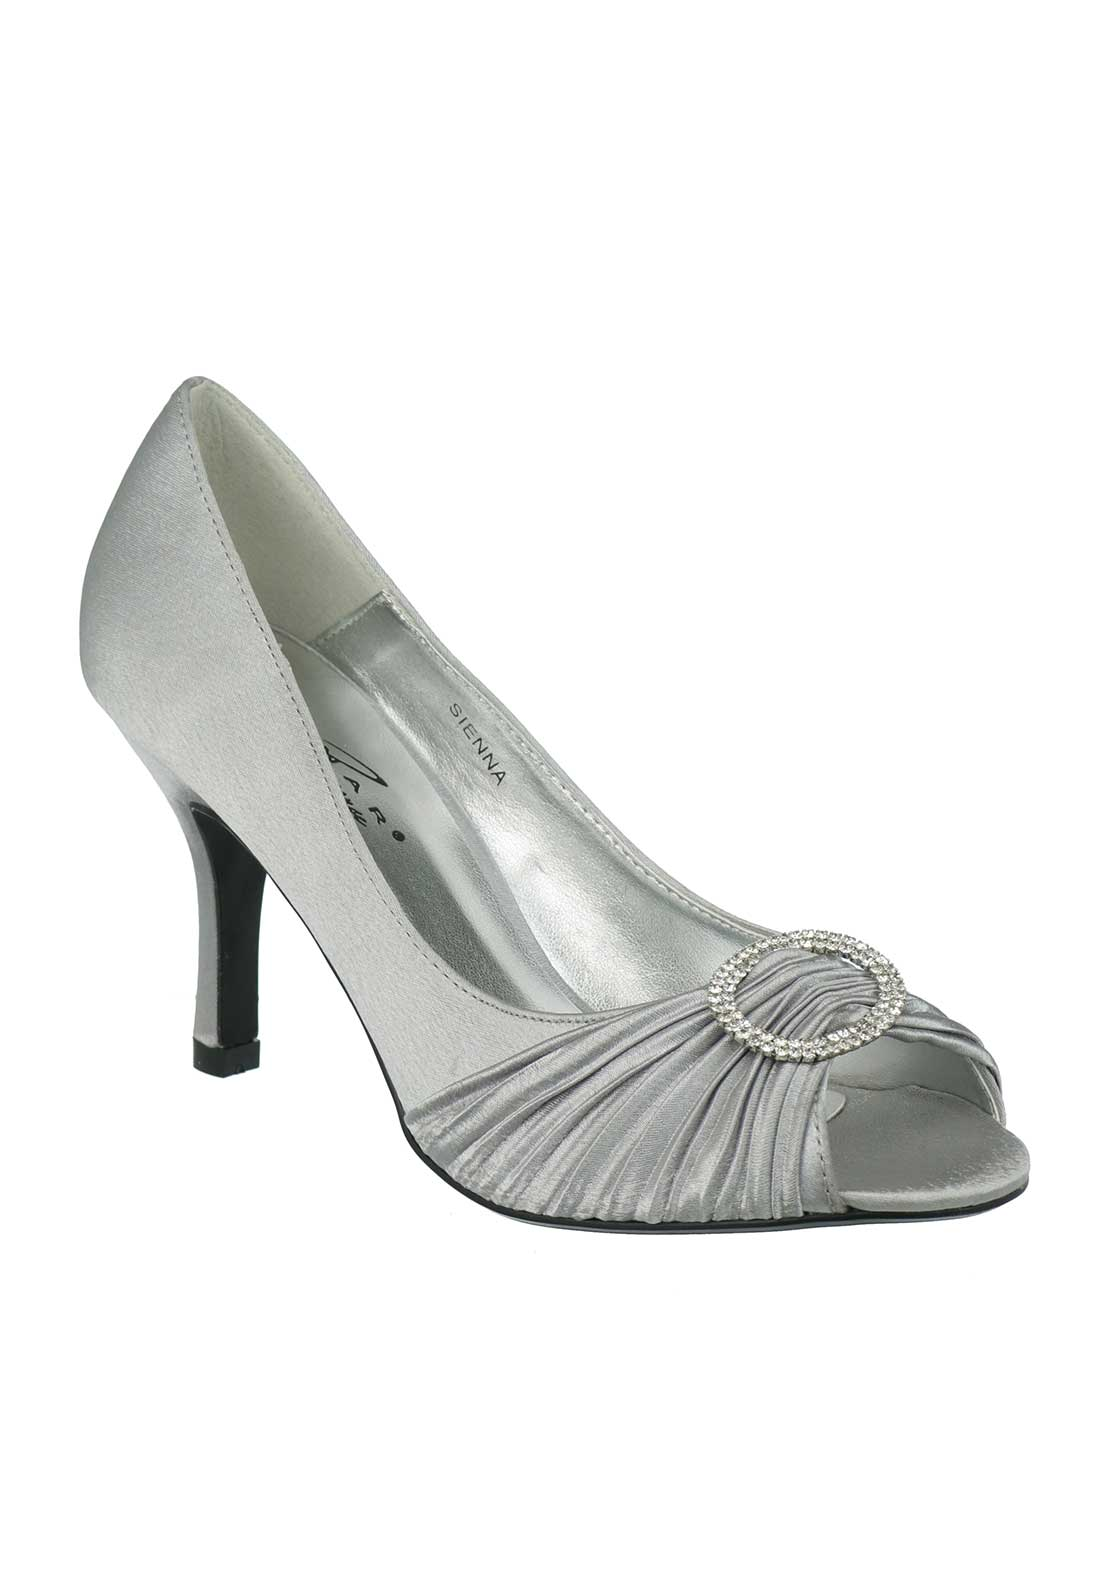 Lunar Elegance Sienna Ruched Heeled Shoes, Grey